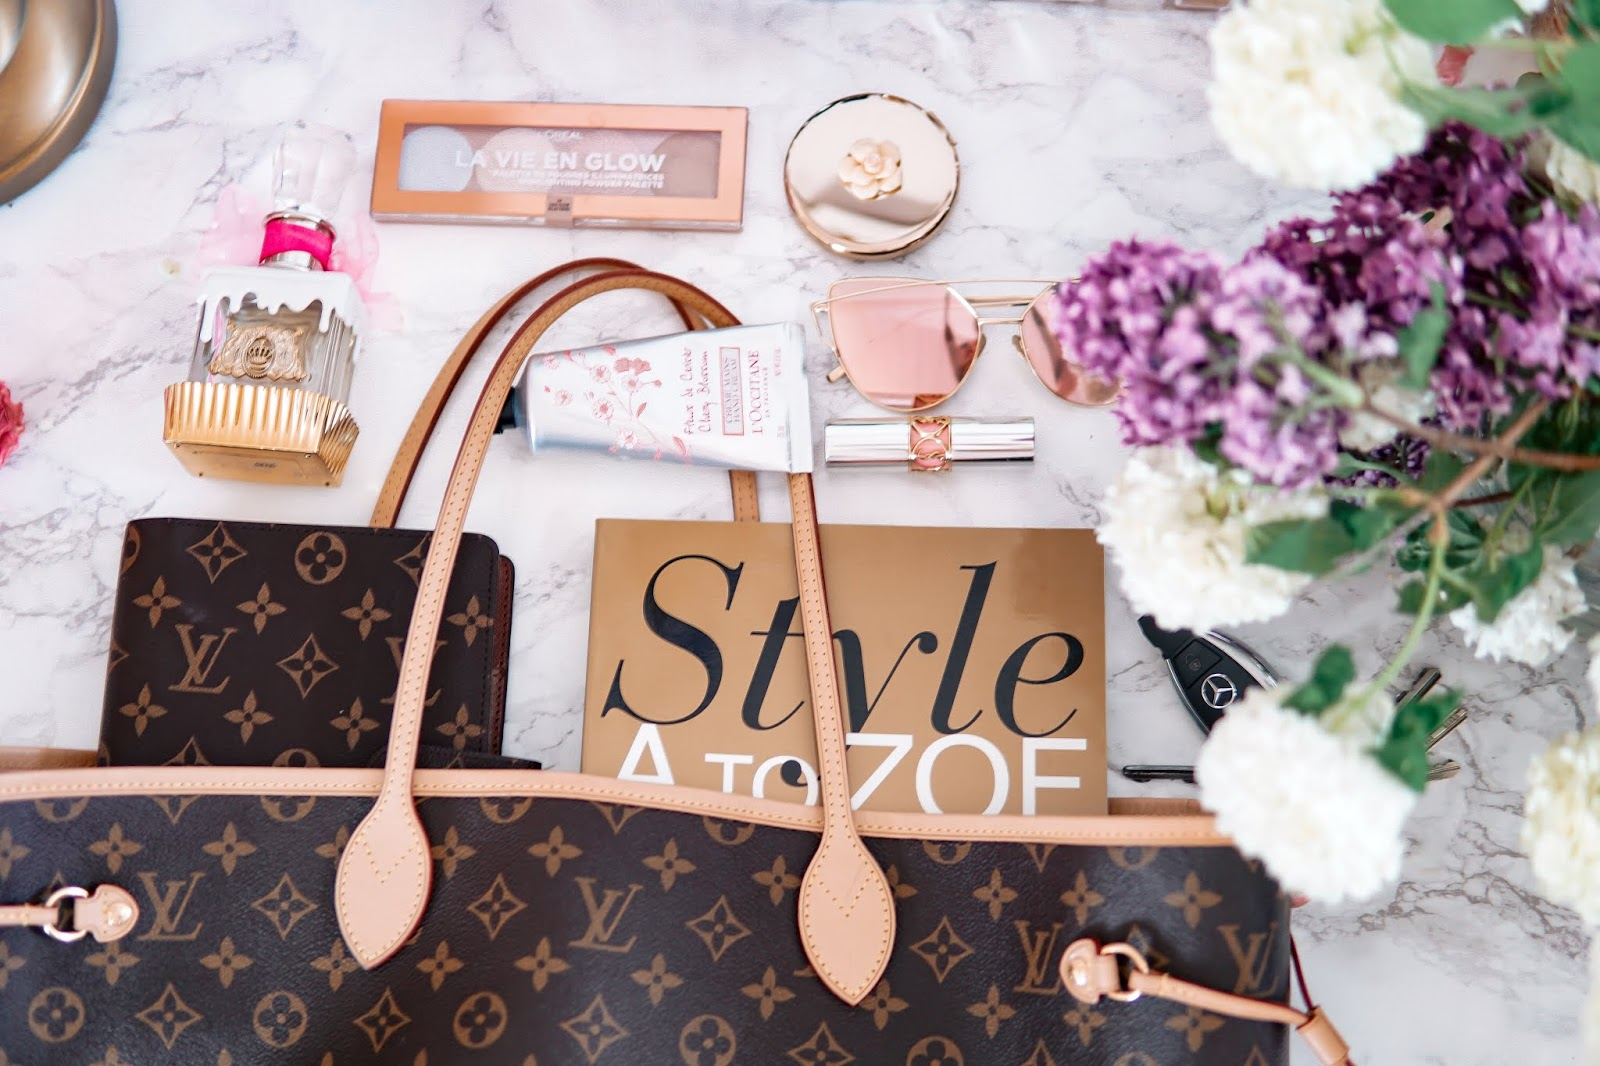 louis-vuitton-neverfull-fashionstylebyjohanna-Louis-Vuitton-neverfull-gm-braun-klassisch